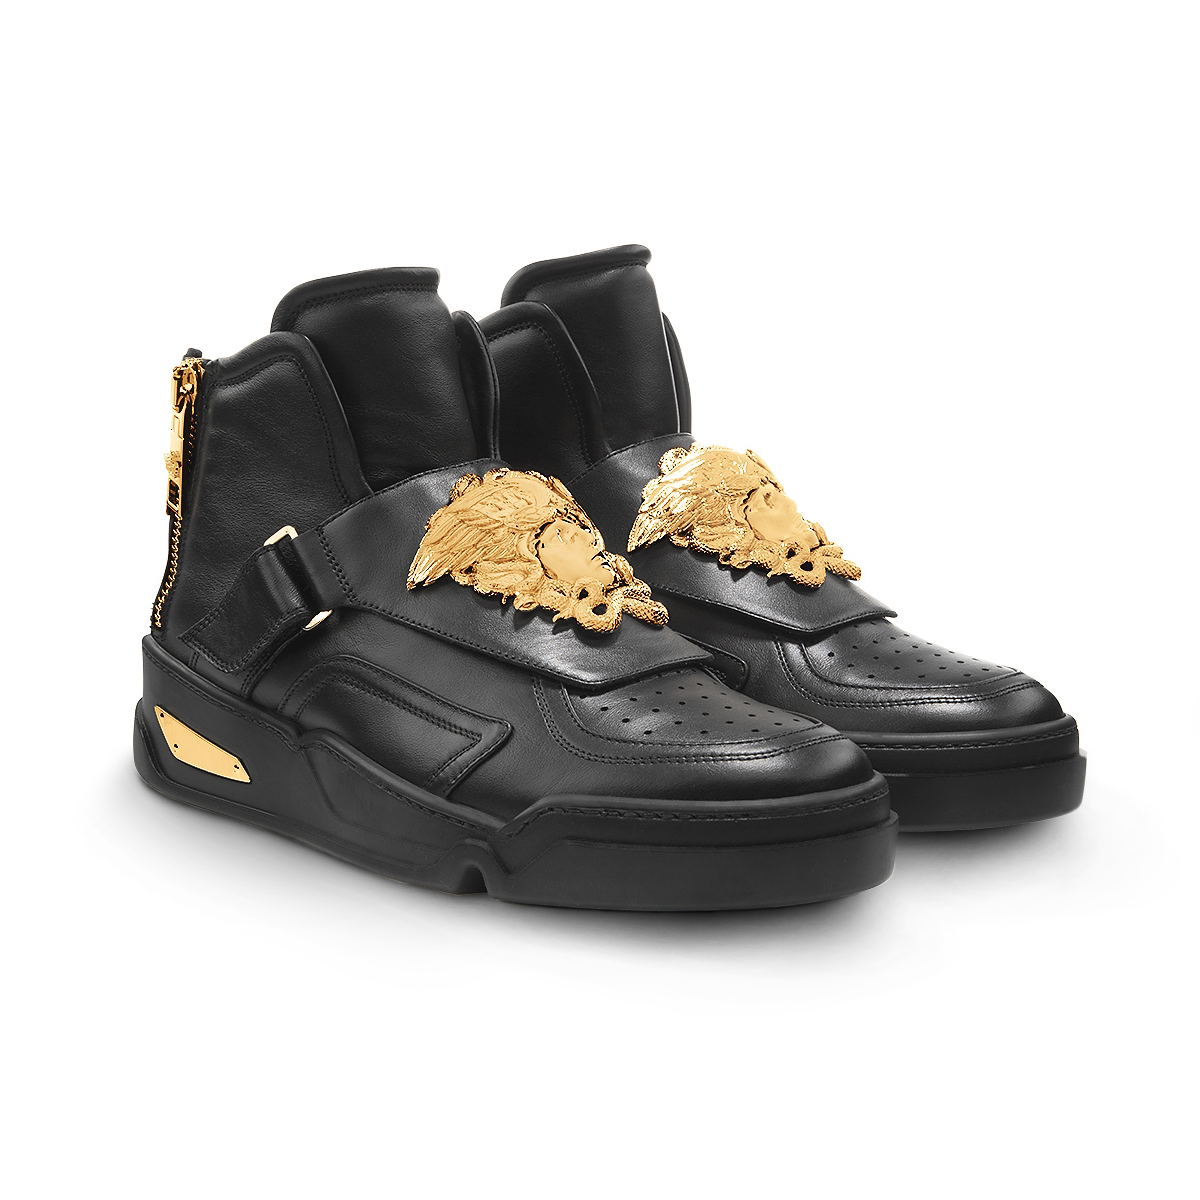 0376727170 Discover more #Versace Men's sneakers on versace.com #VersaceSneakers